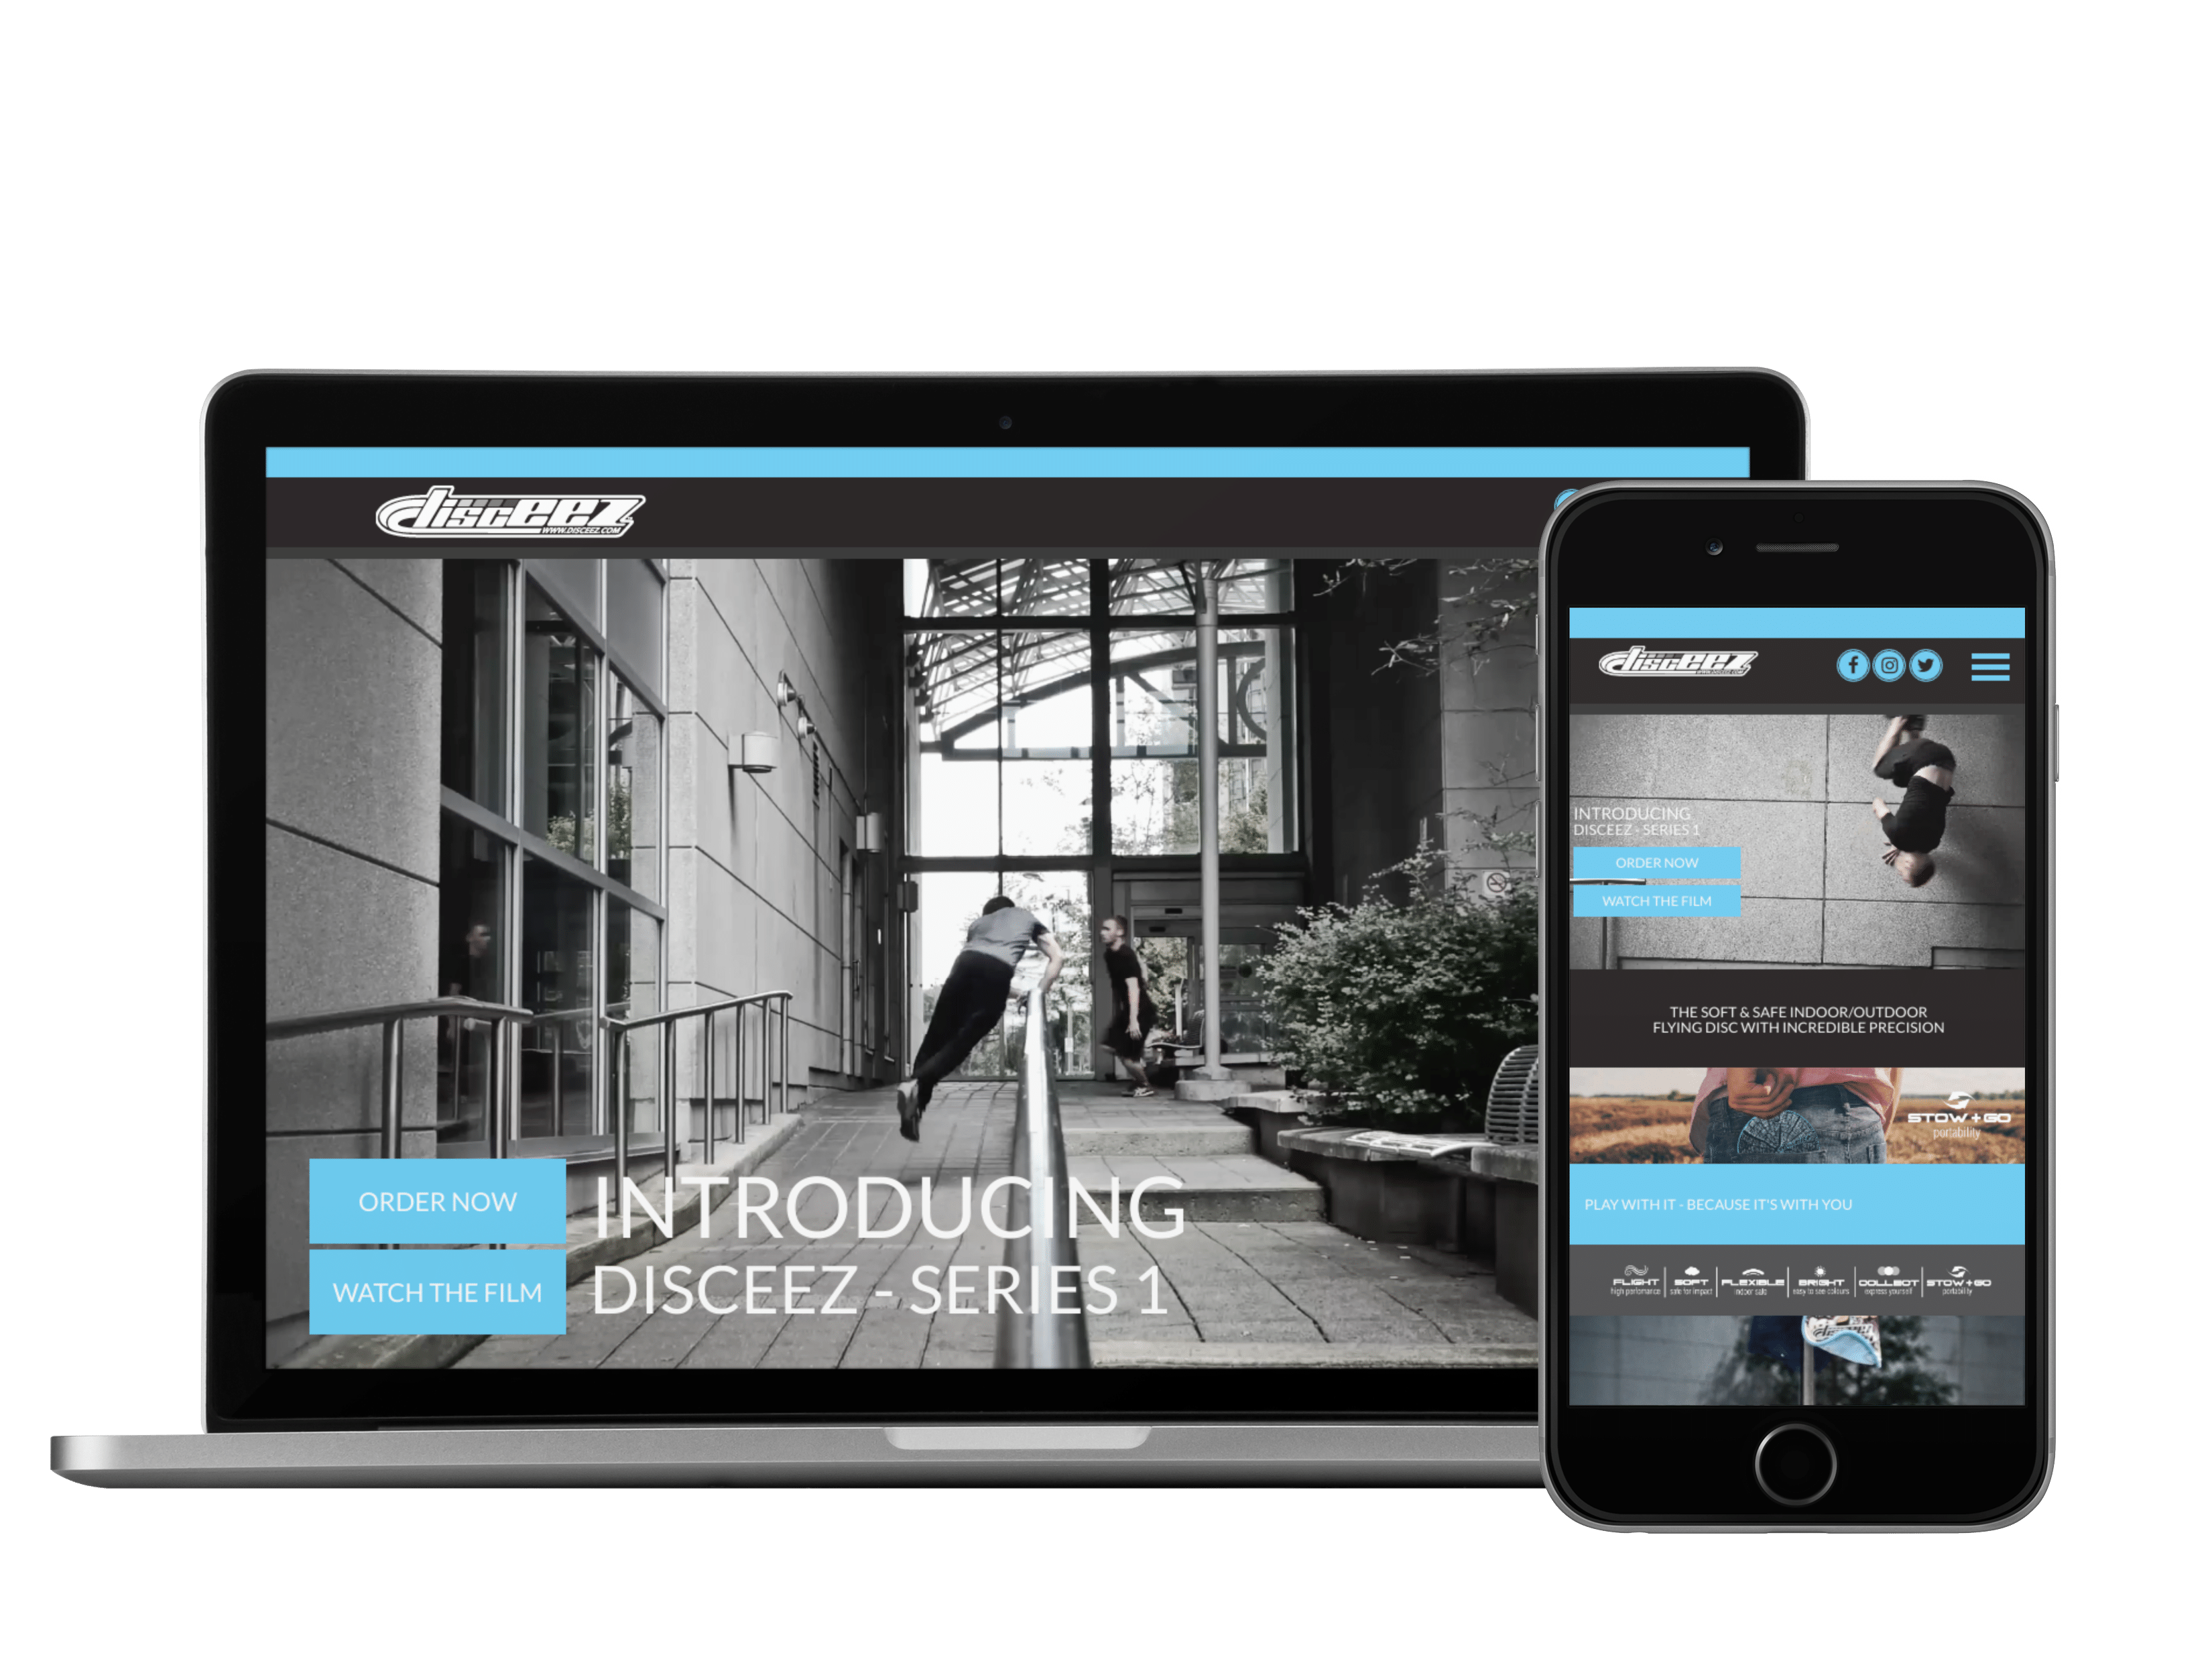 Launching a new product website done by Zealous Social